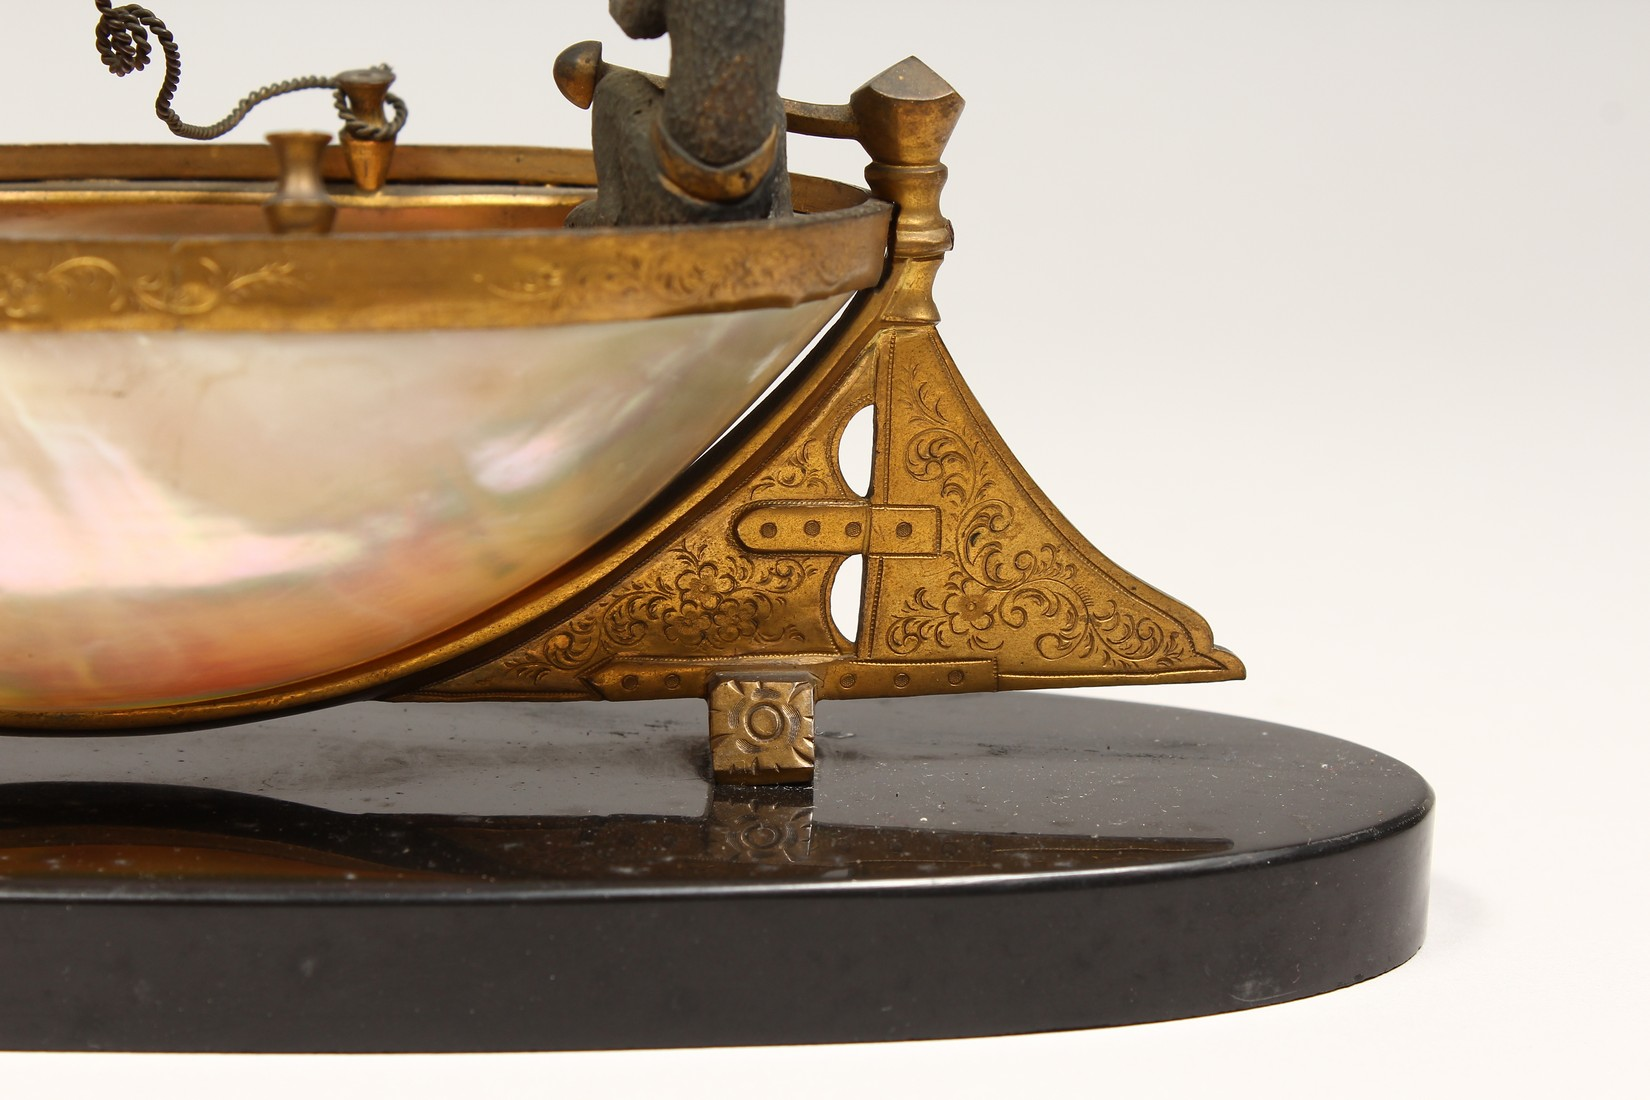 AN UNUSUAL LATE 19TH CENTURY FRENCH ORMOLU MOUNTED SHELL, mounted as a small sailing dinghy, a - Image 5 of 6